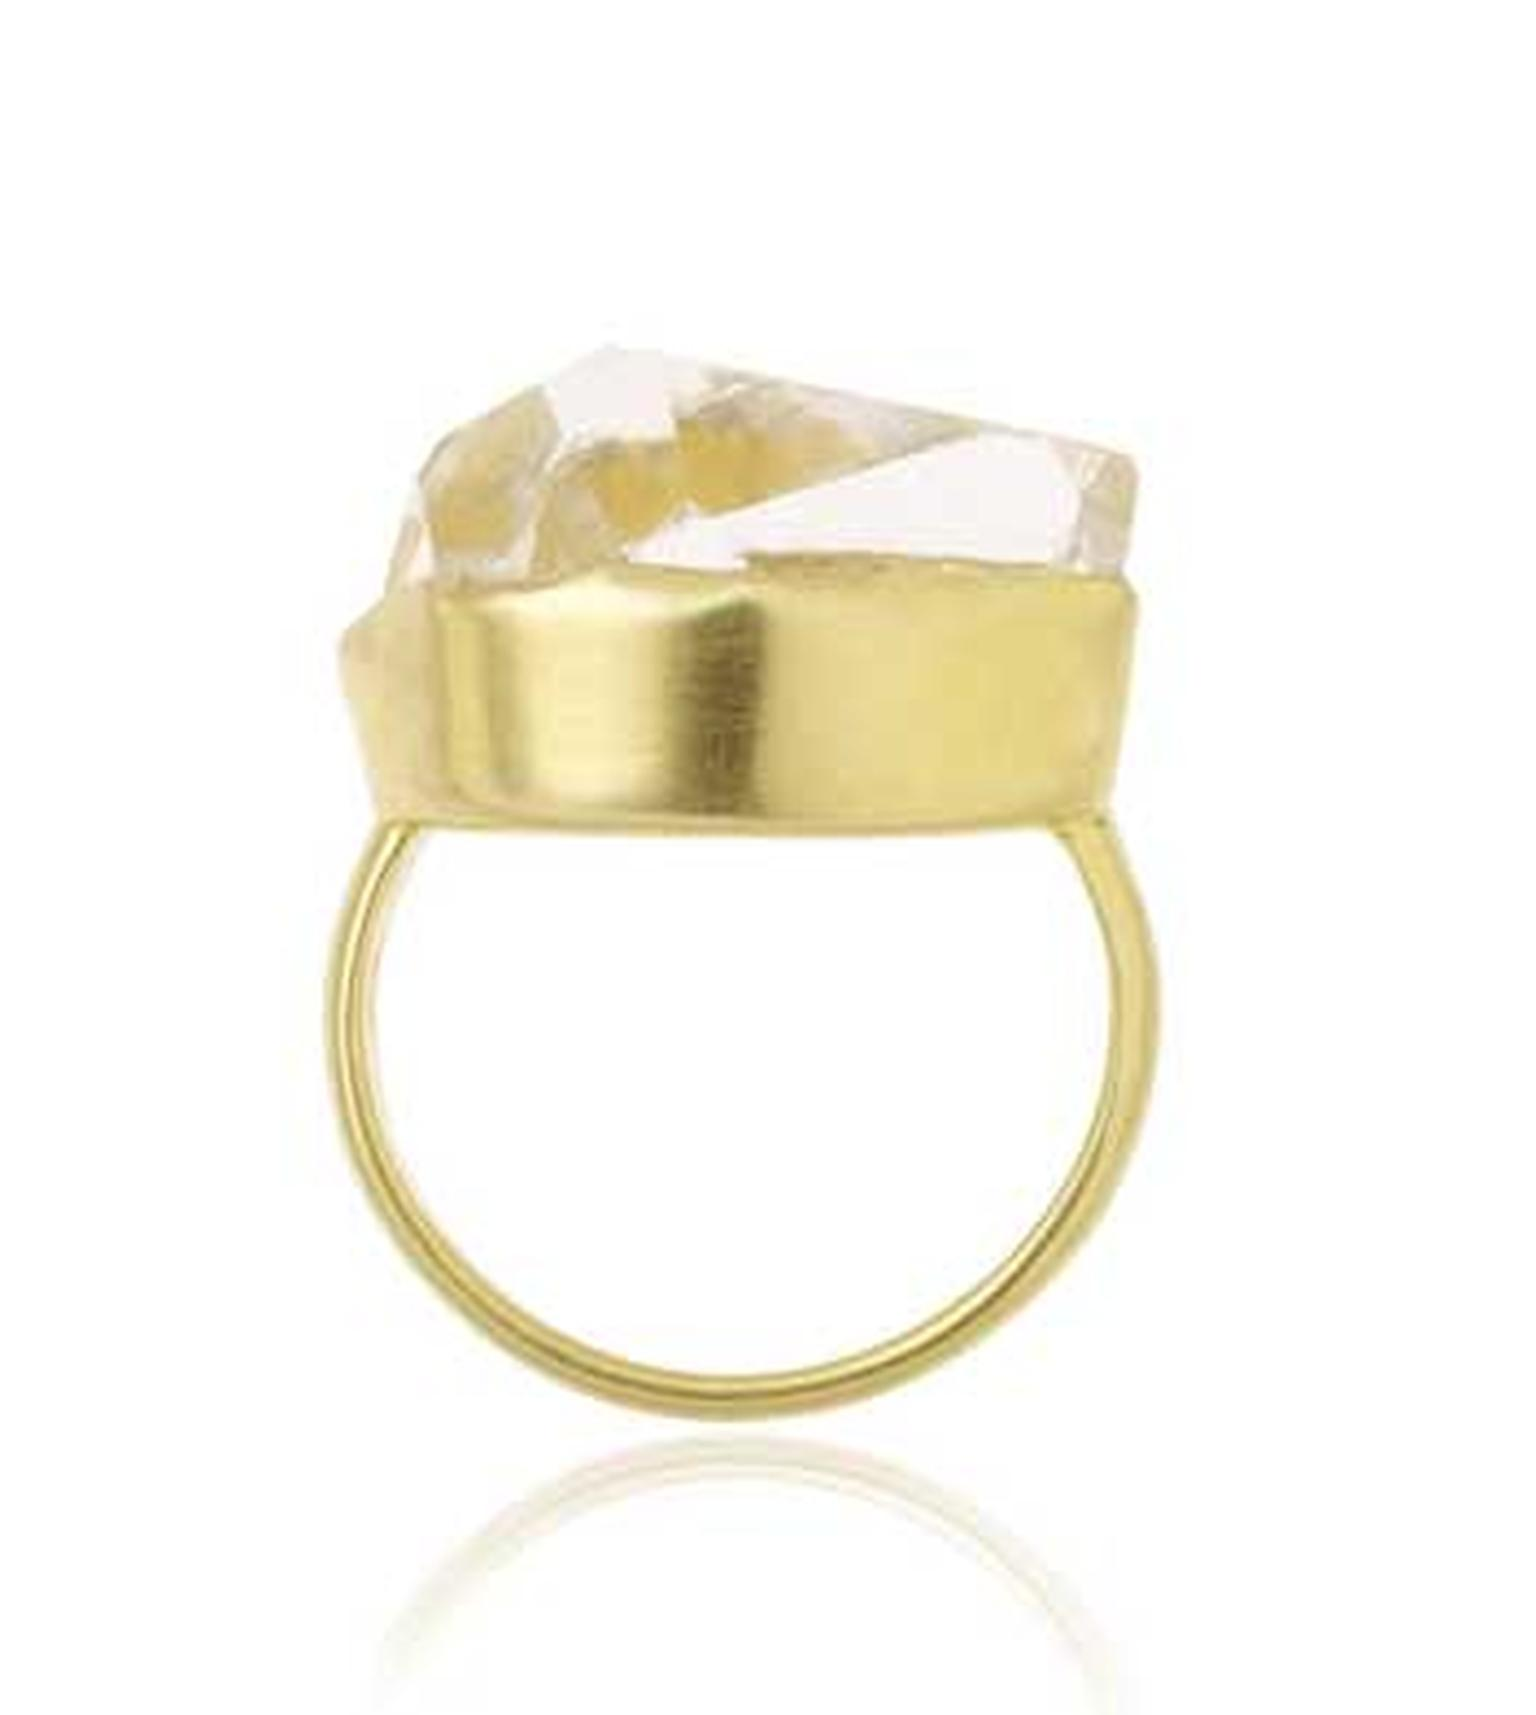 Pippa Small Herkimer diamond ring in yellow gold